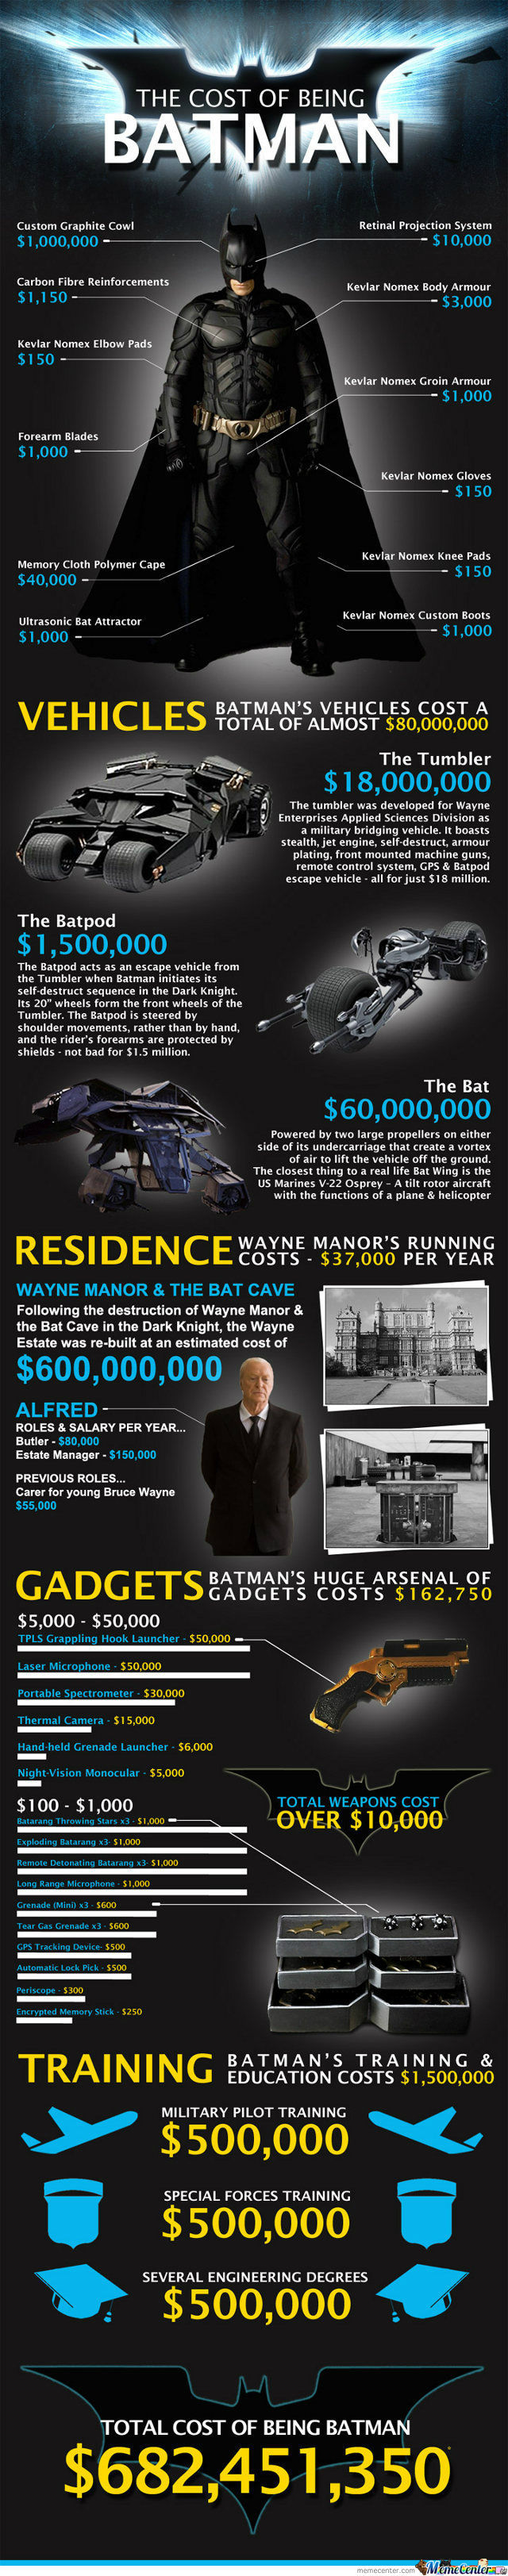 The Full Cost Of Being Batman